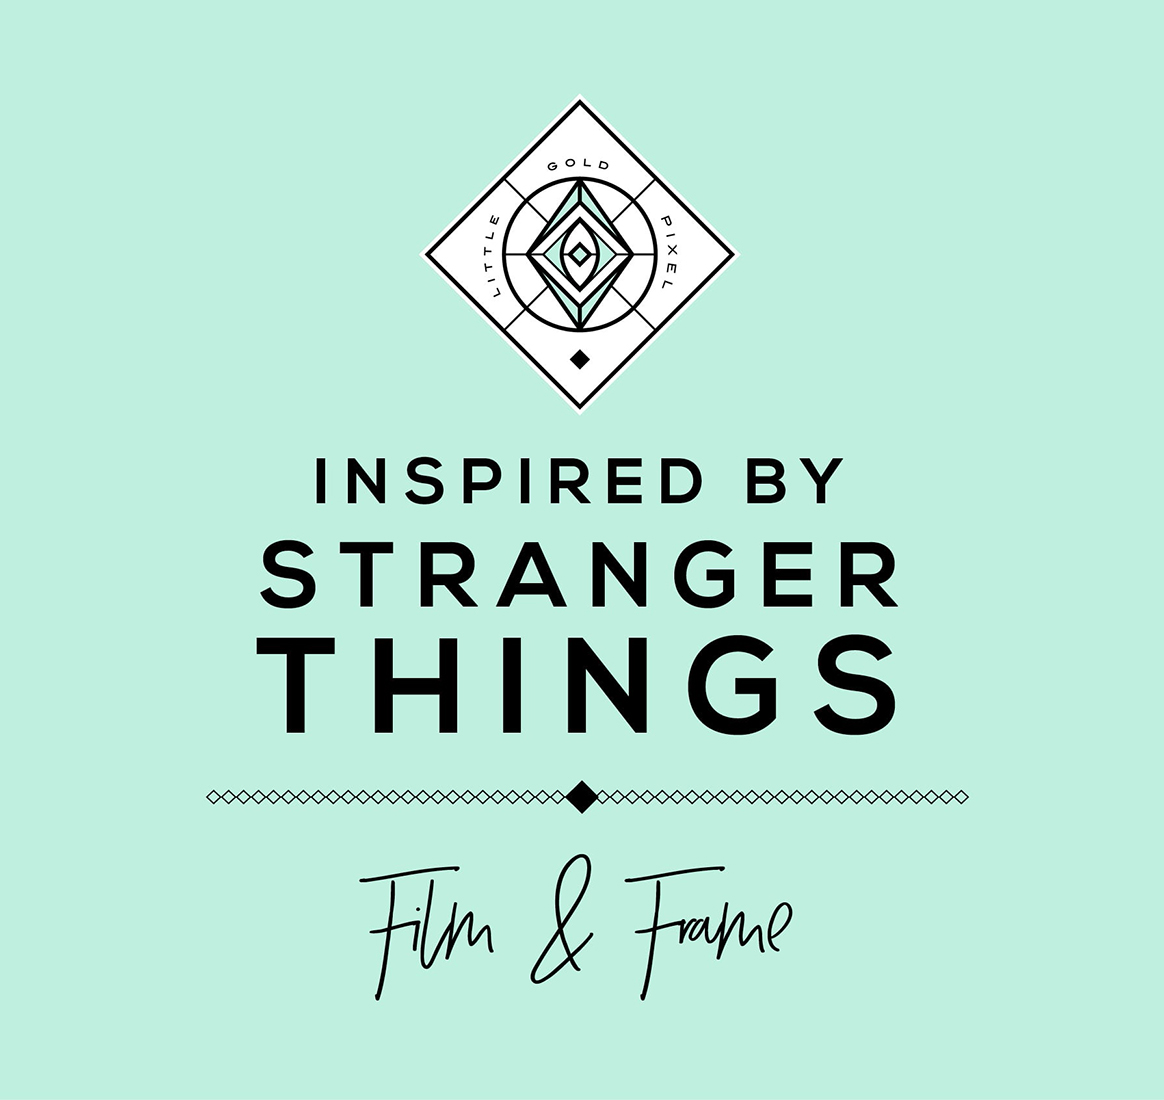 Stranger Things Free Printable Mornings Are for Coffee and Contemplation • Little Gold Pixel